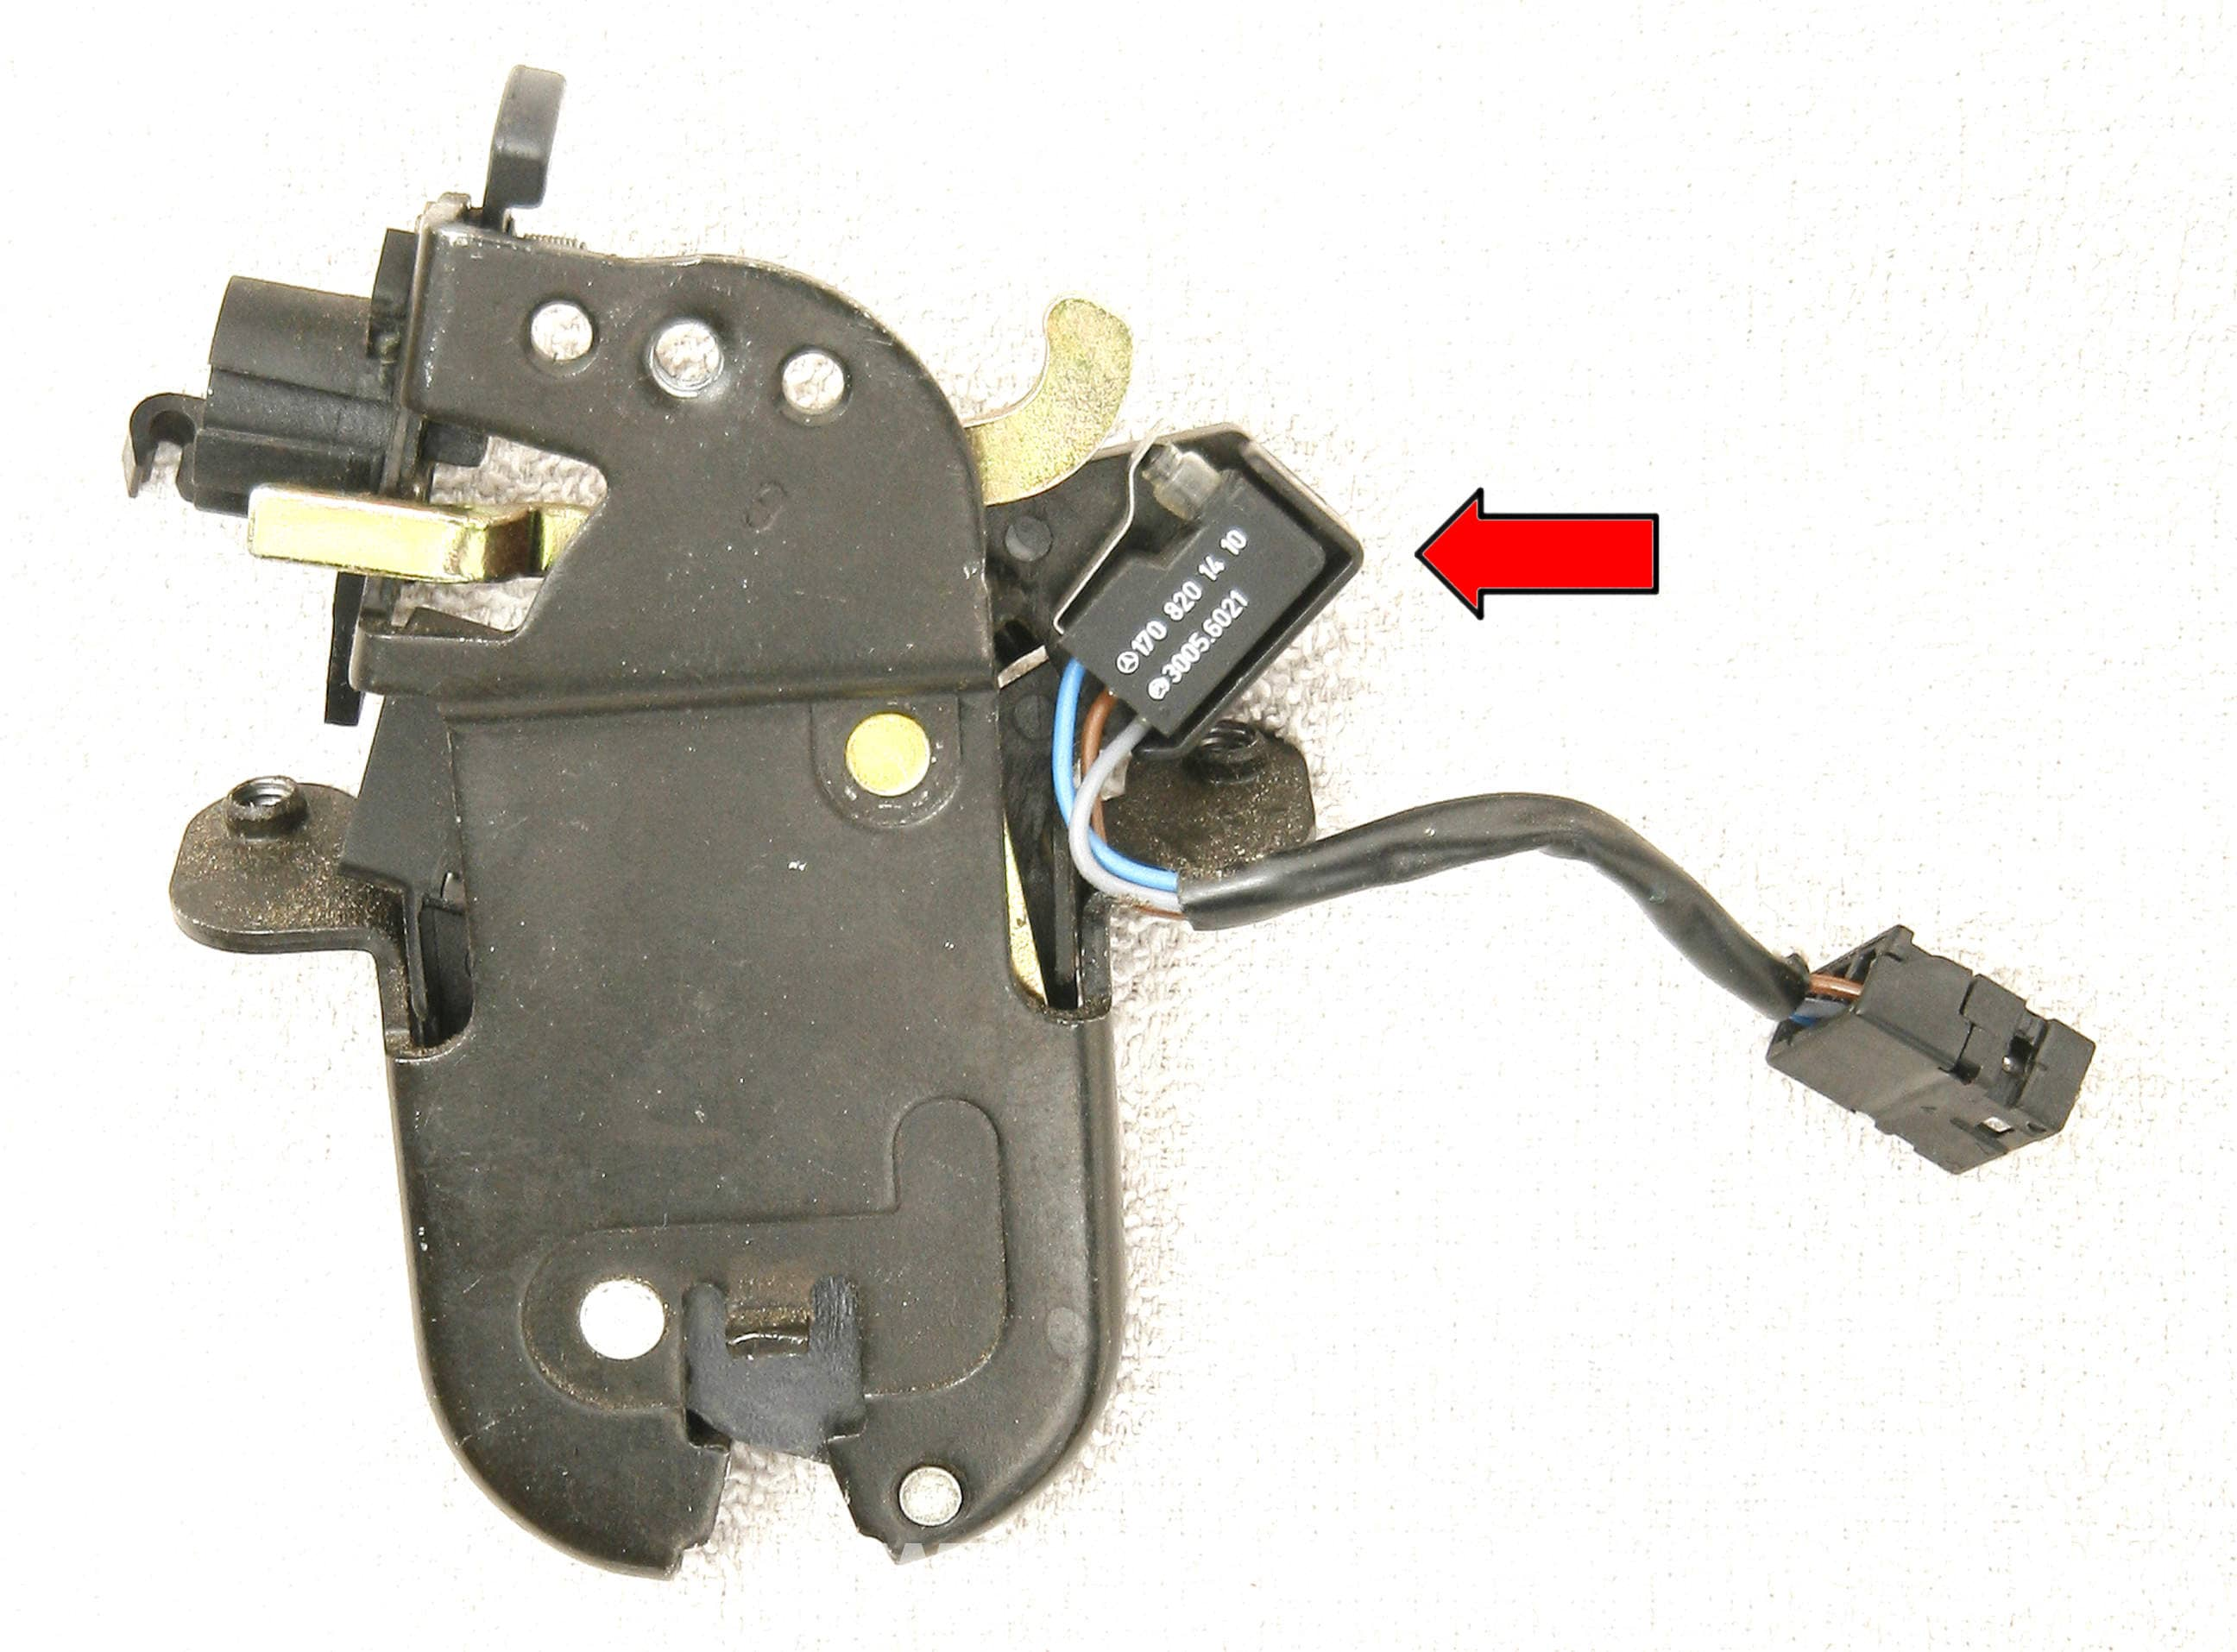 Mercedes Benz Slk 230 Vario Roof Switches Location And Id 1998 Micro Switch Seat Belt Open Wiring Diagram Large Image Extra